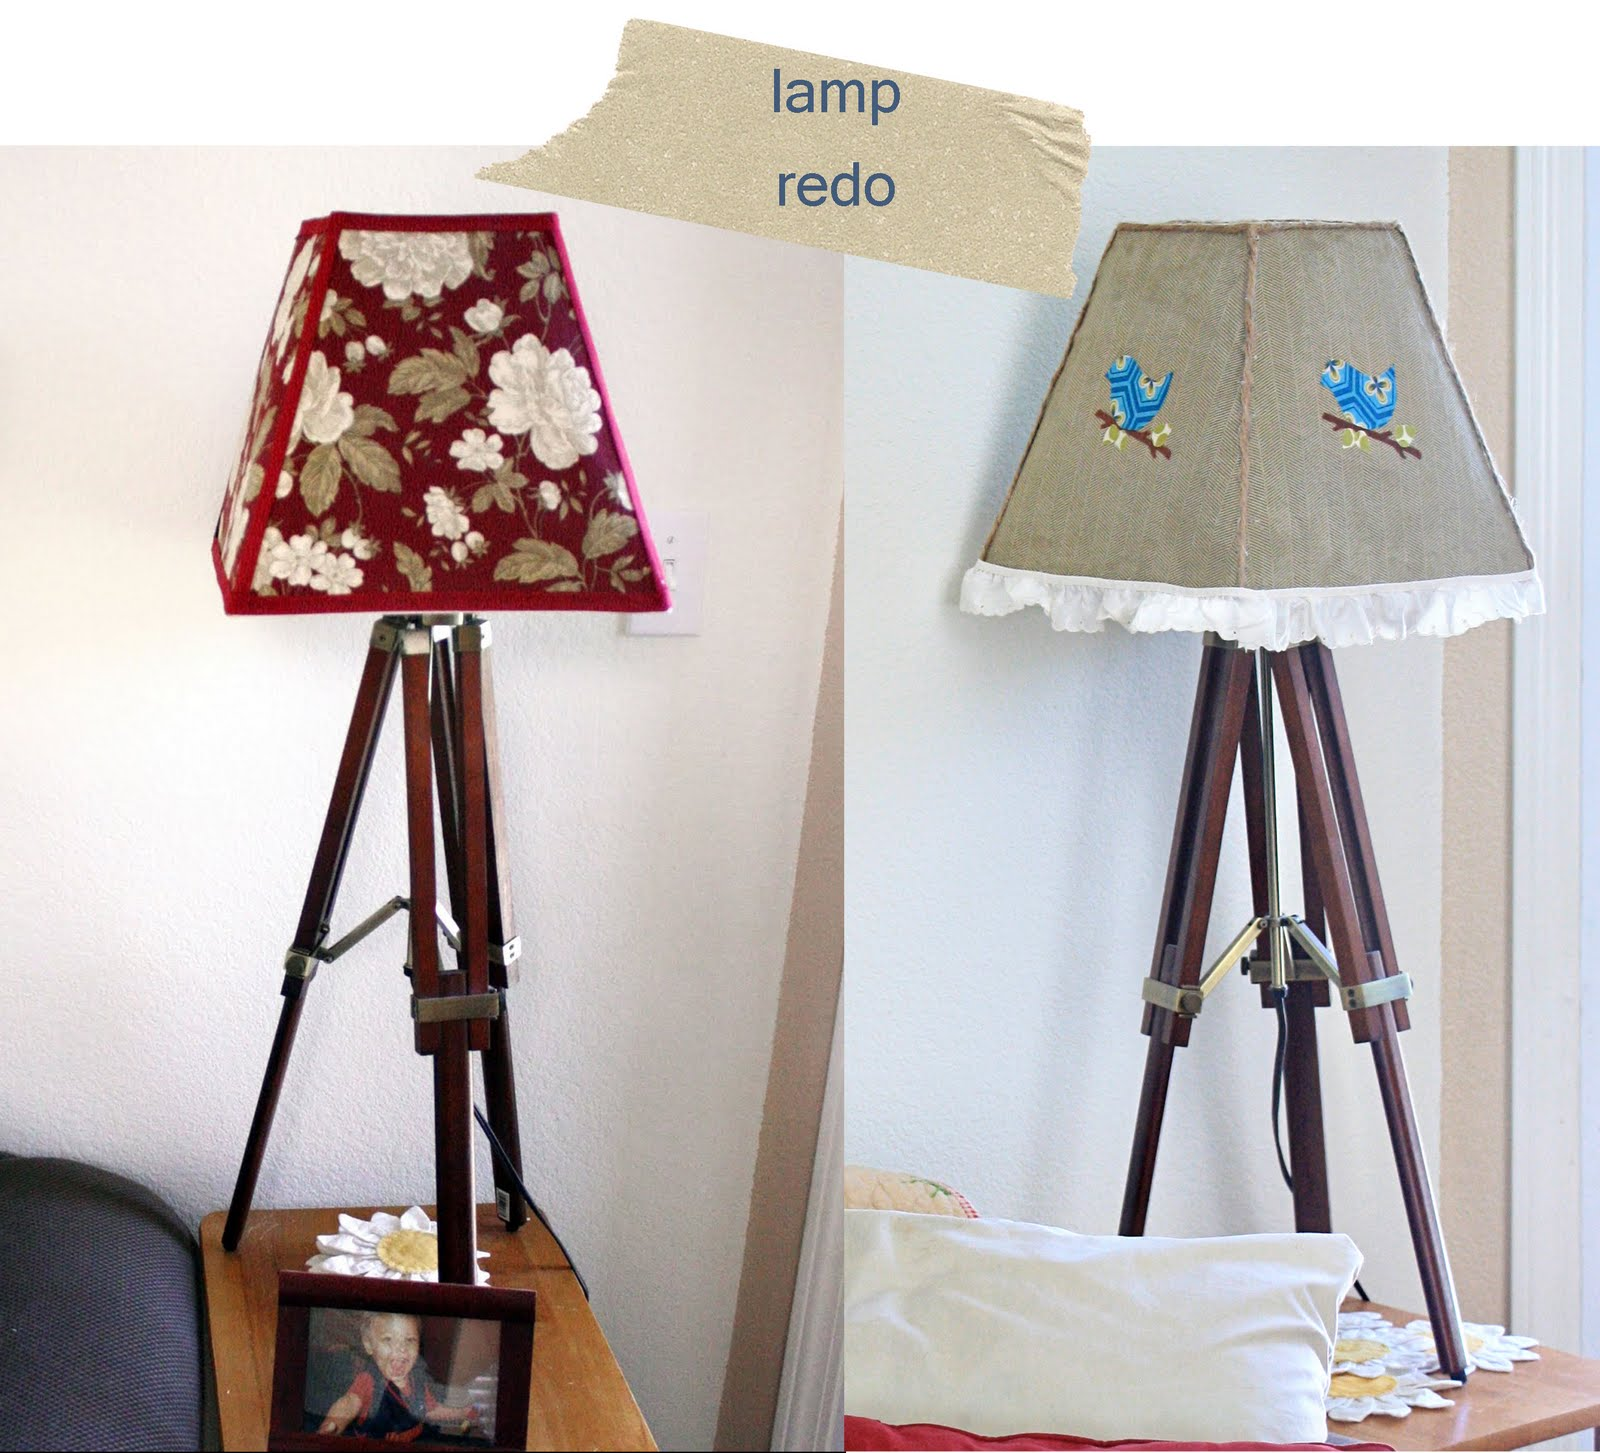 Notes from the plumb tree a lamp shade redo a lamp shade redo aloadofball Images